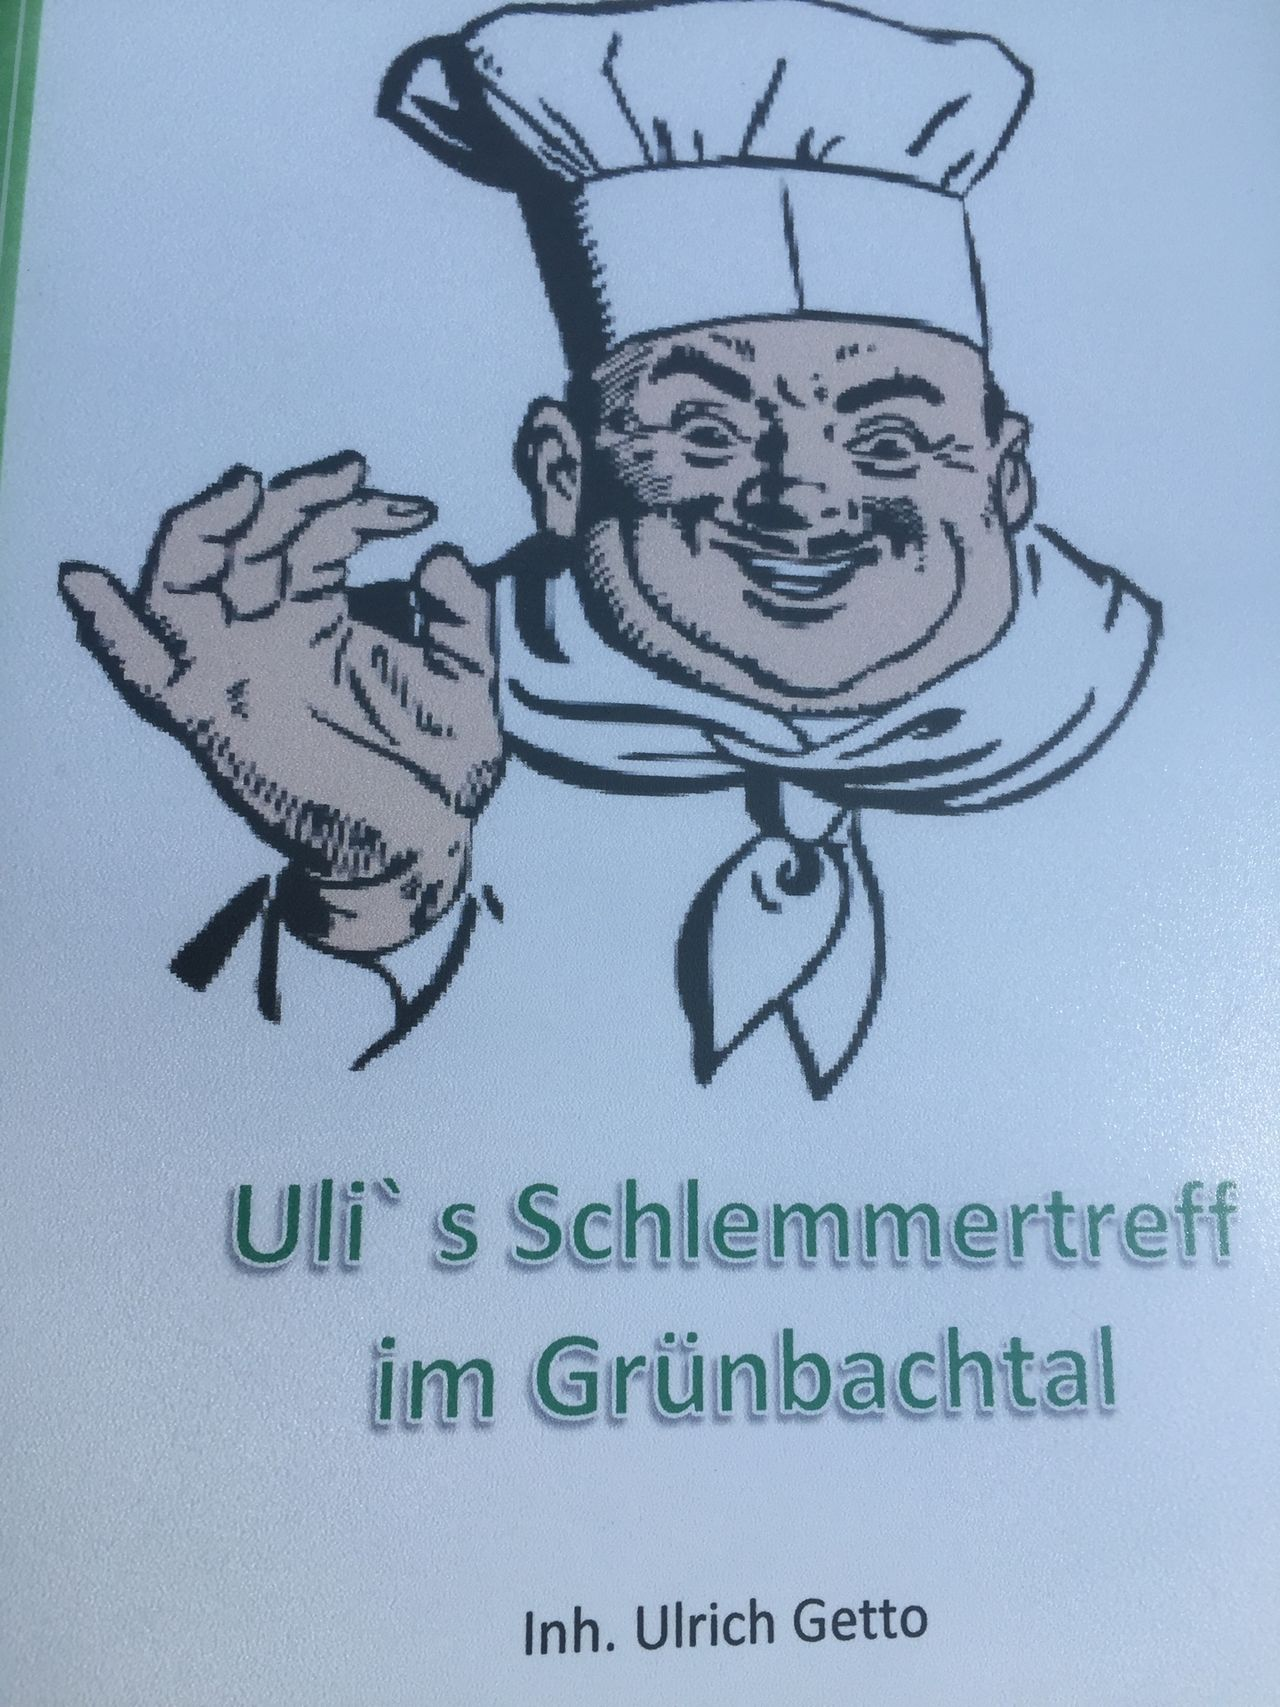 A photo of Uli's Schlemmertreff